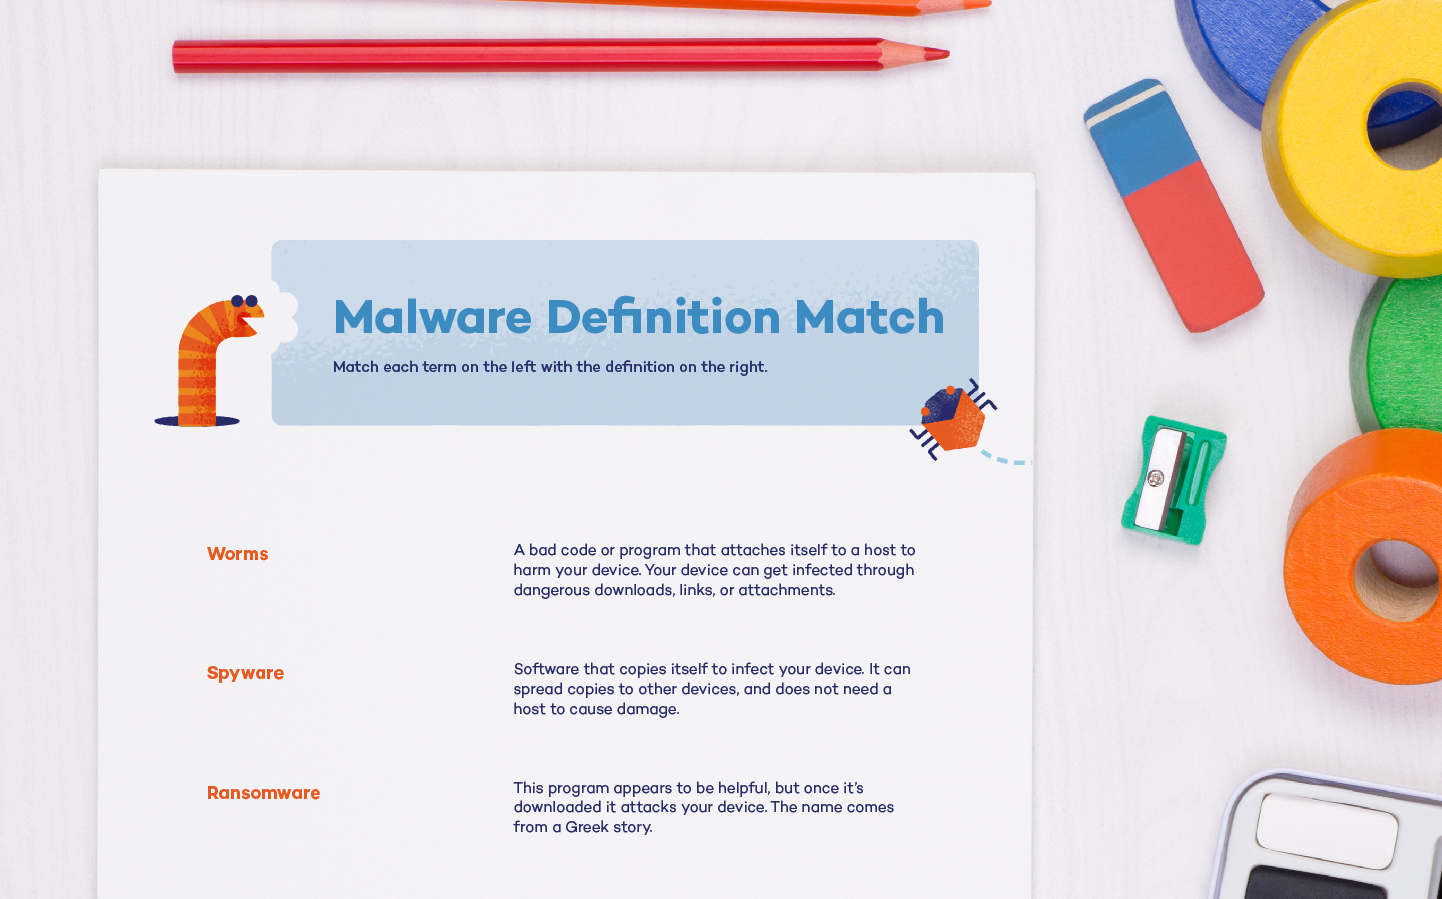 photo of a malware definition match